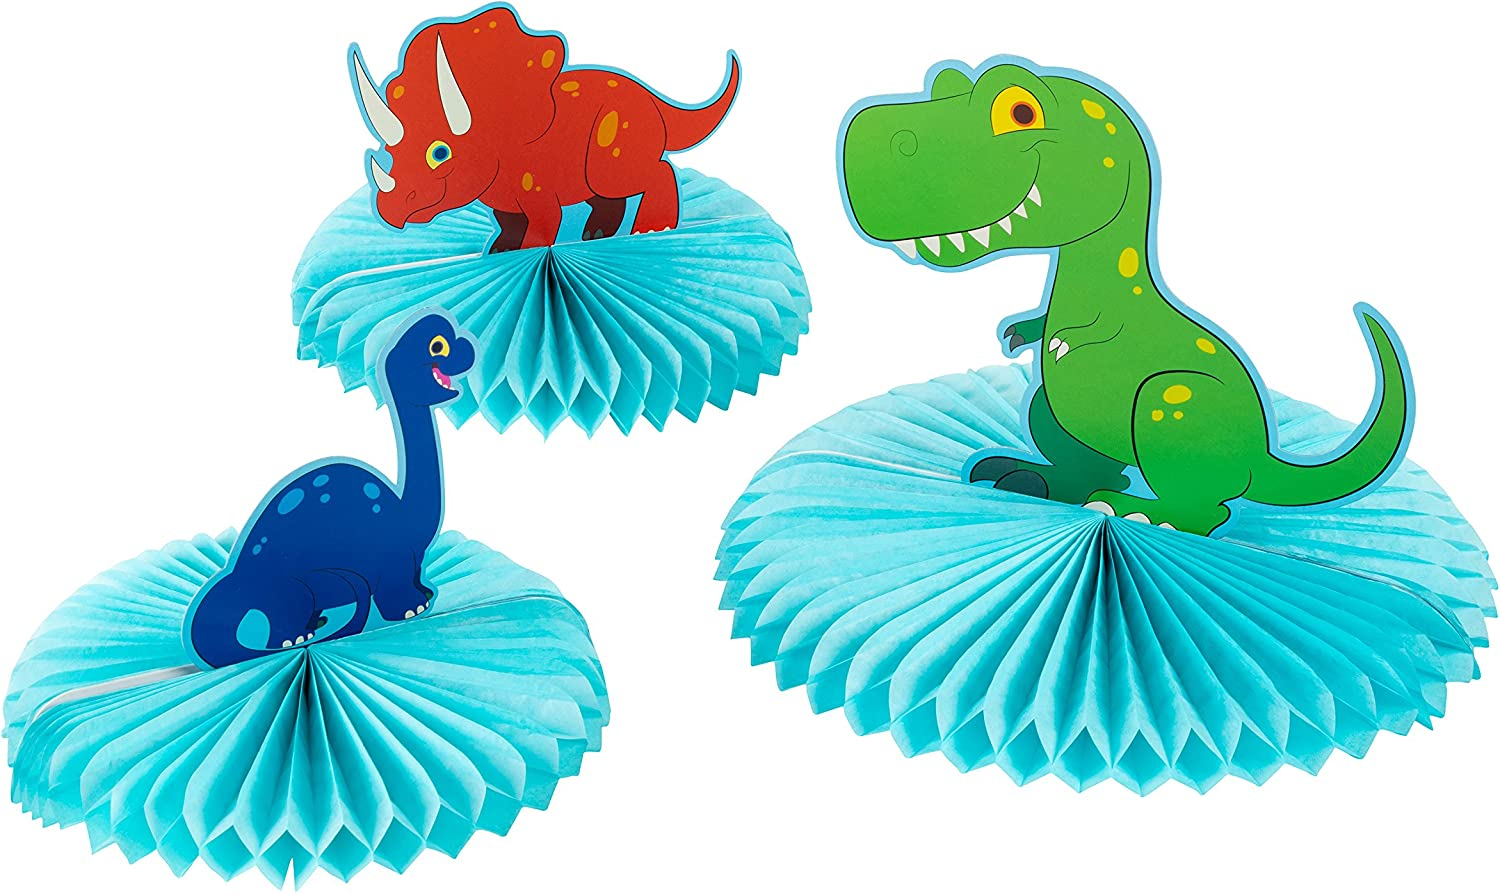 Dinosaur Party Decoration - 3-Piece Dinosaur Honeycomb Decoration Centerpiece, Kids Birthday Party Supplies for Boys, T-Rex, Triceratops, and Brachiosaurus